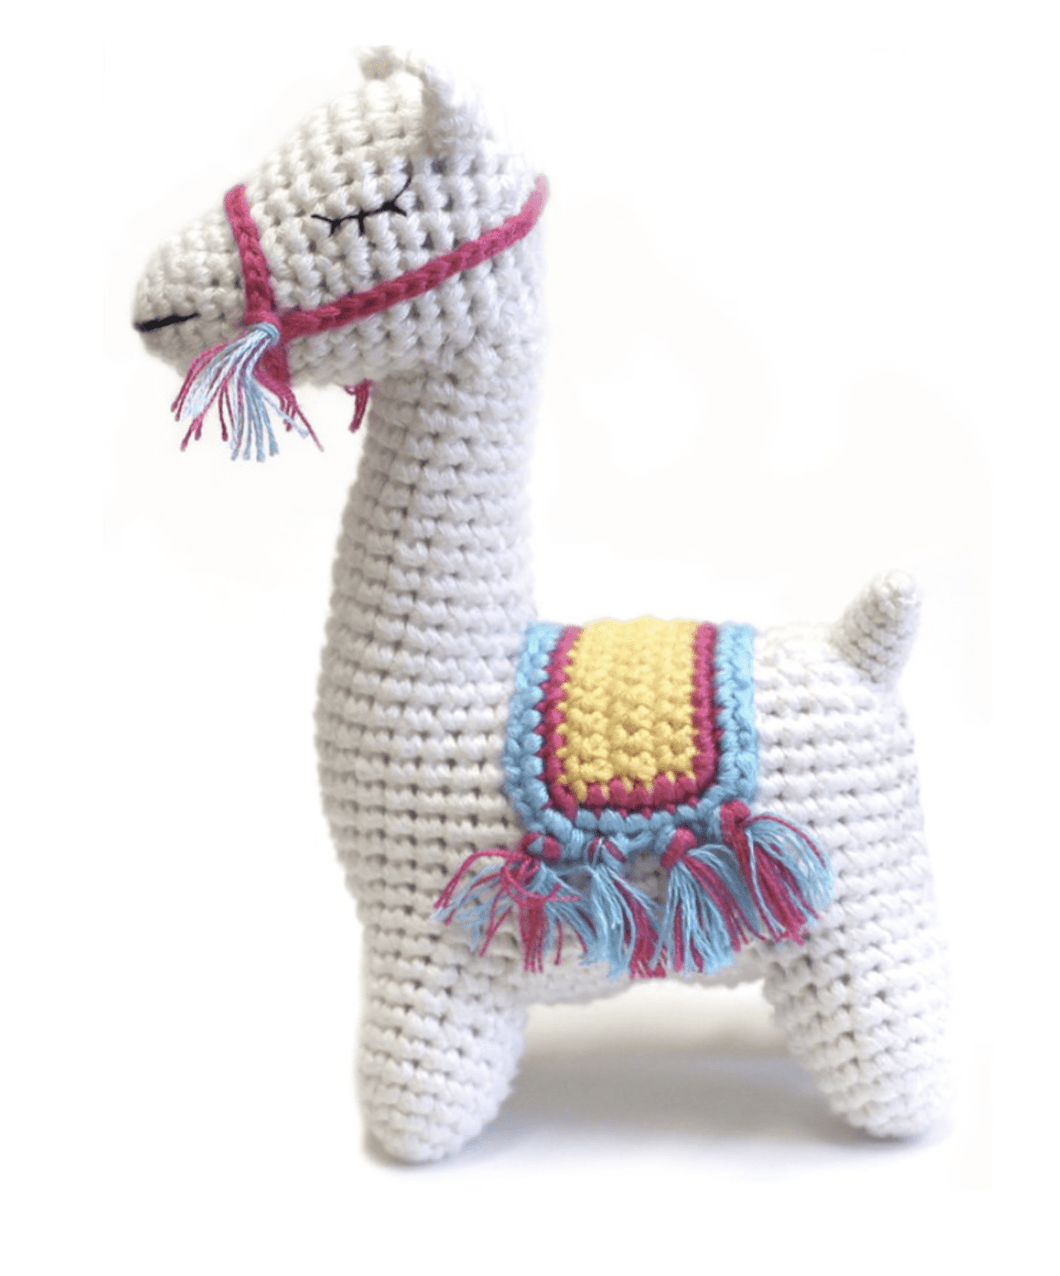 Hand Crocheted Organic Llama Rattle - Make Me Yours Toy Studio